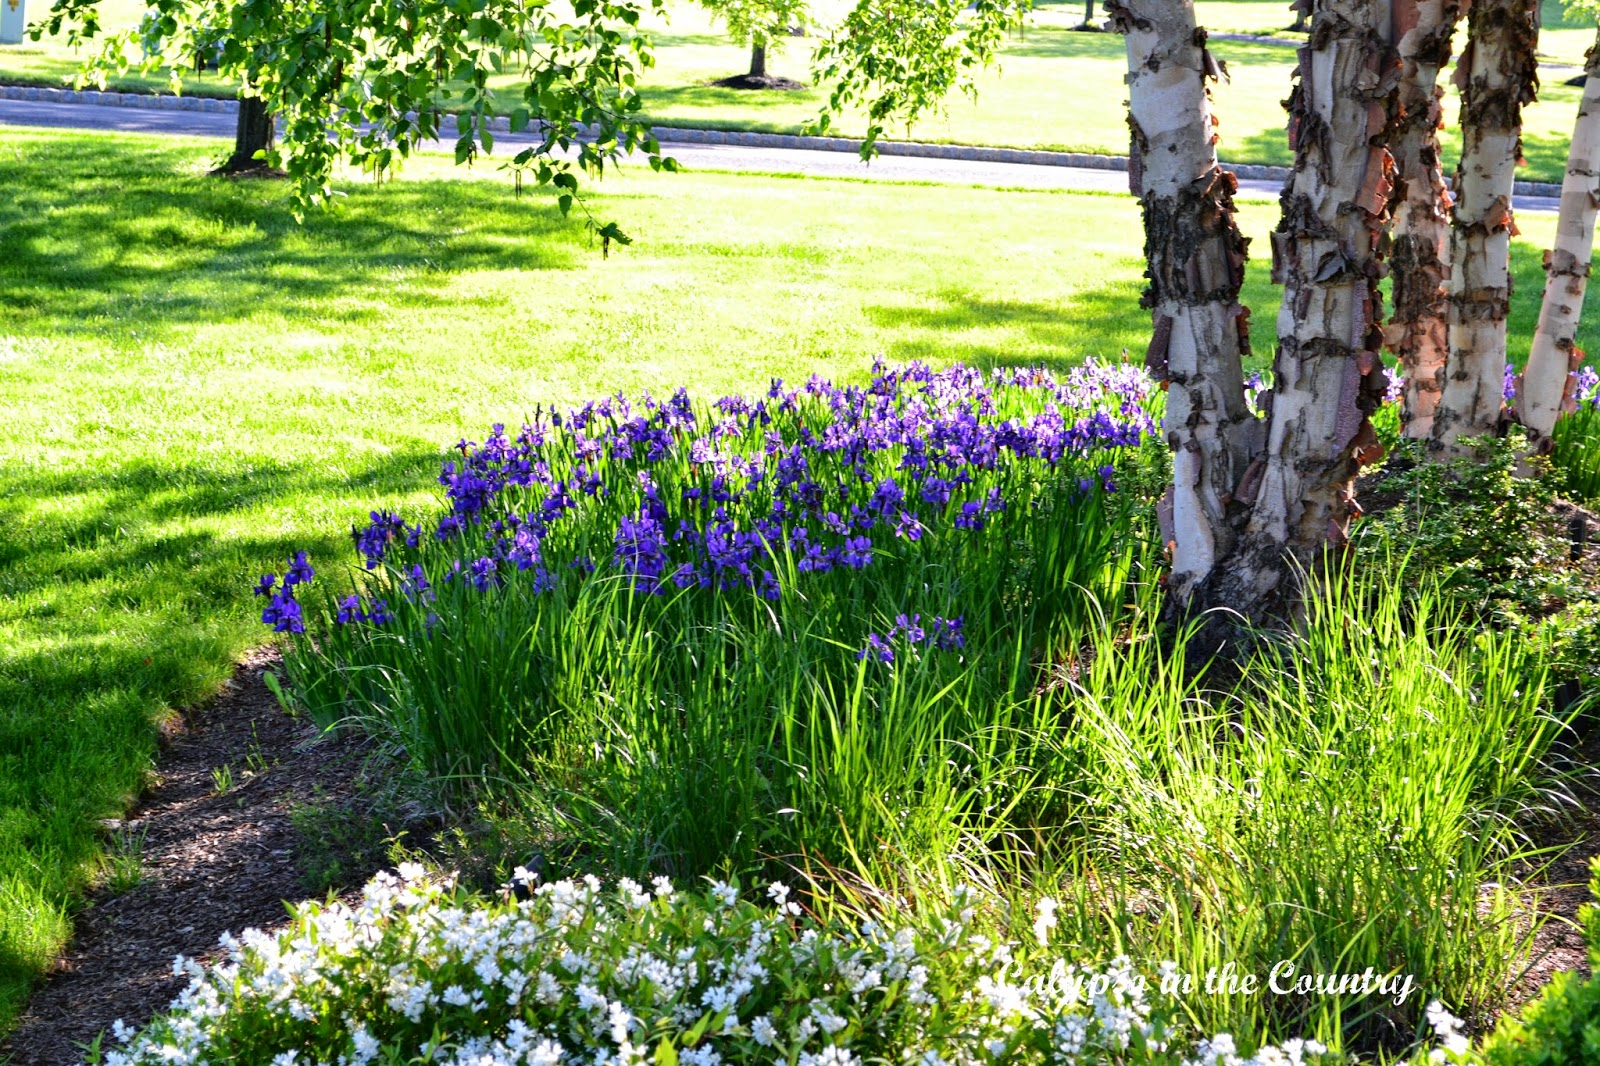 Purple Irises in bloom